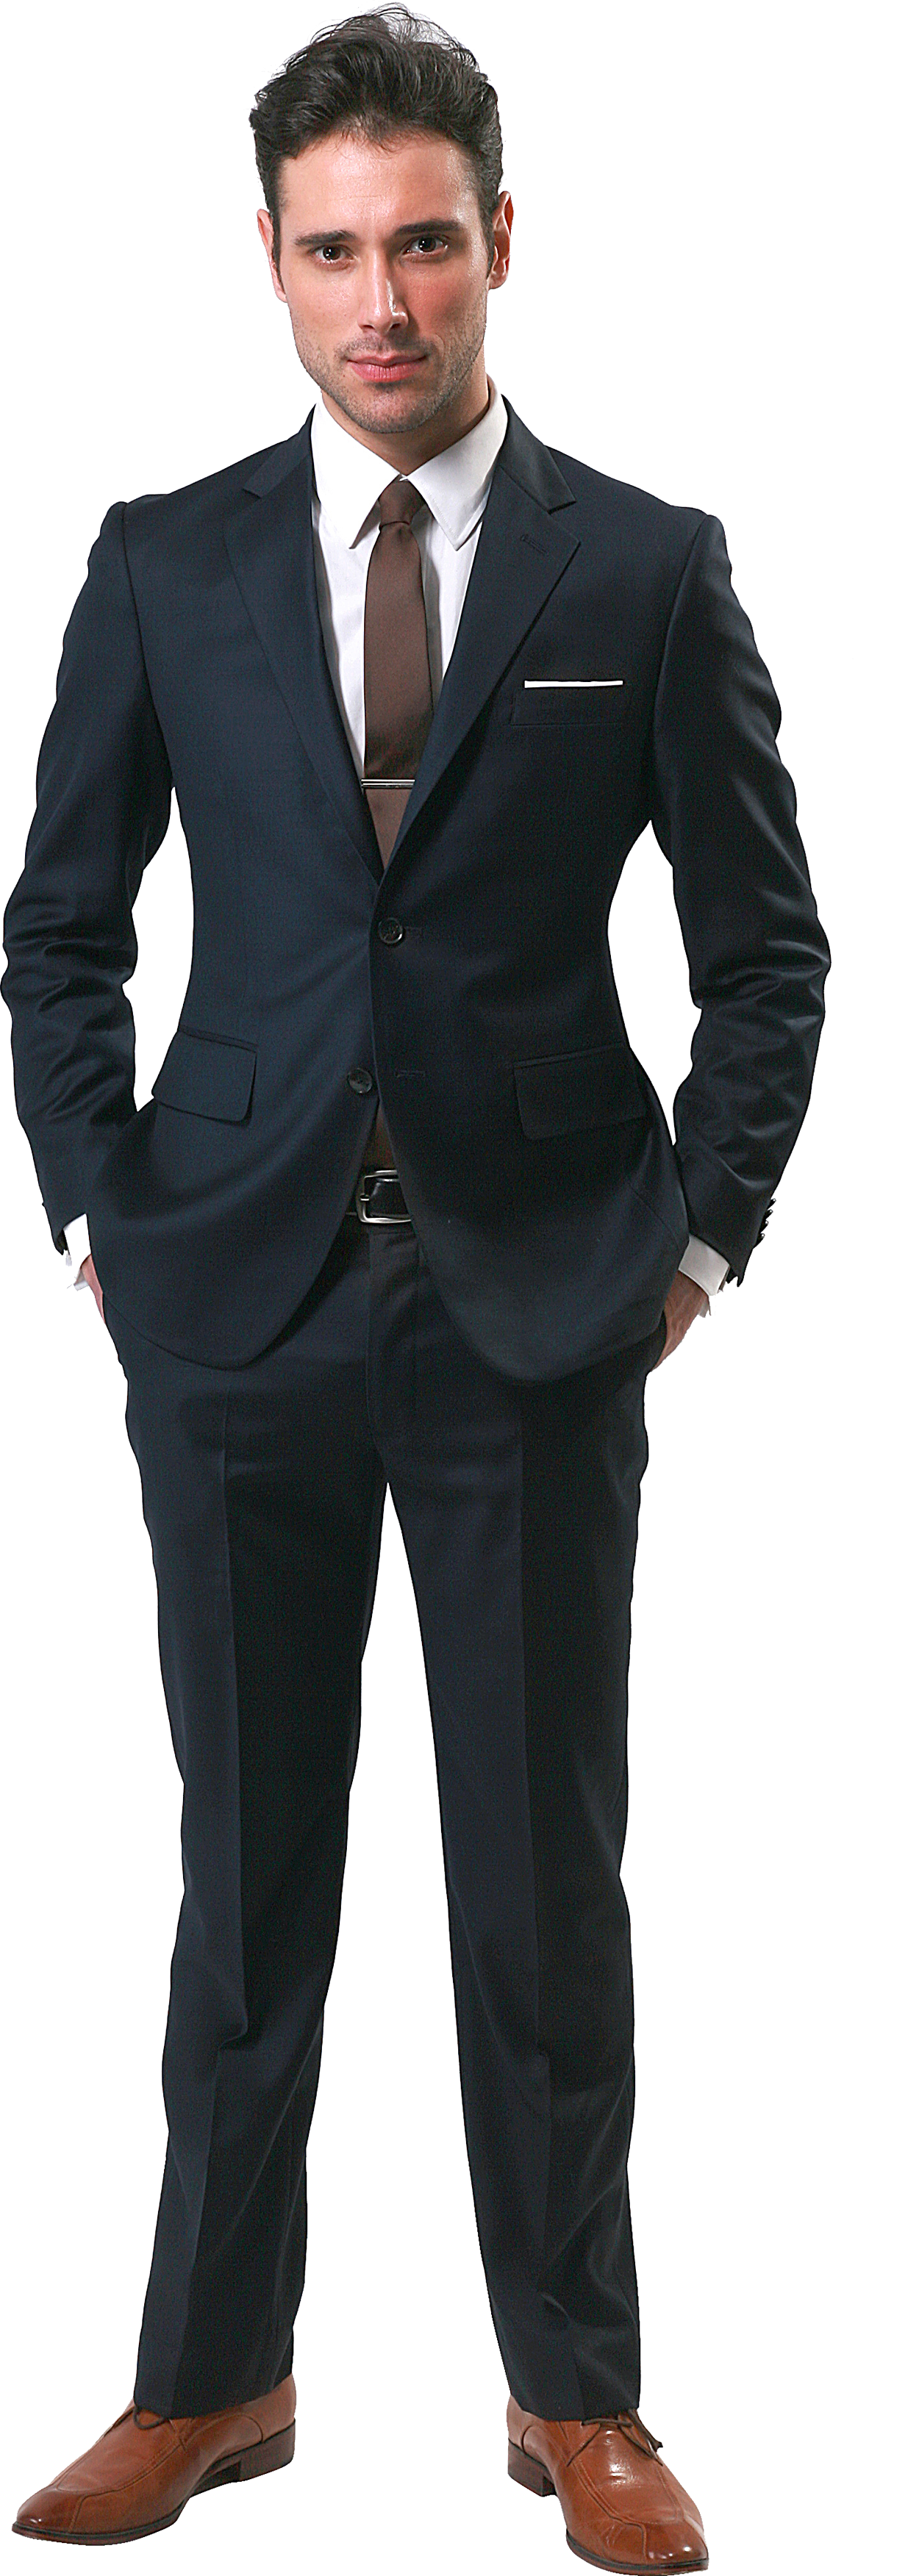 Businessman Wallpaper Business Free Photo PNG PNG Image